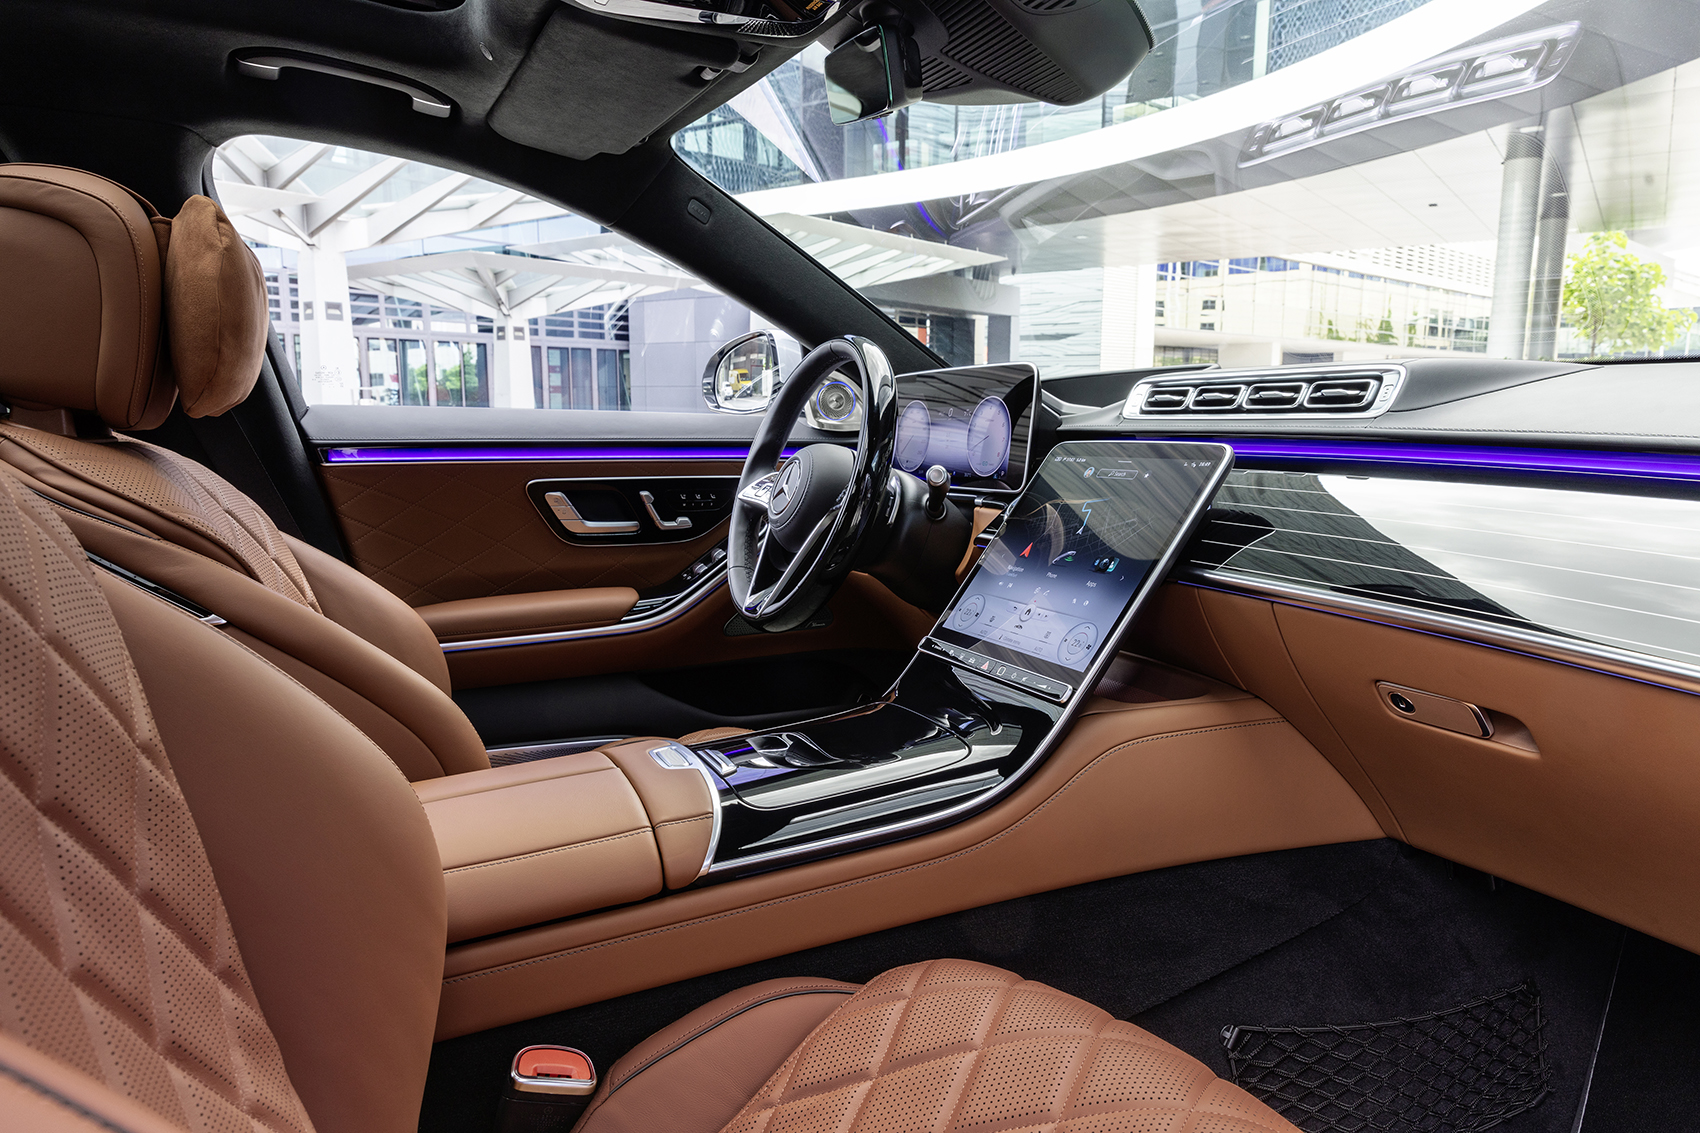 Inside the Mercedes S Class front cabin